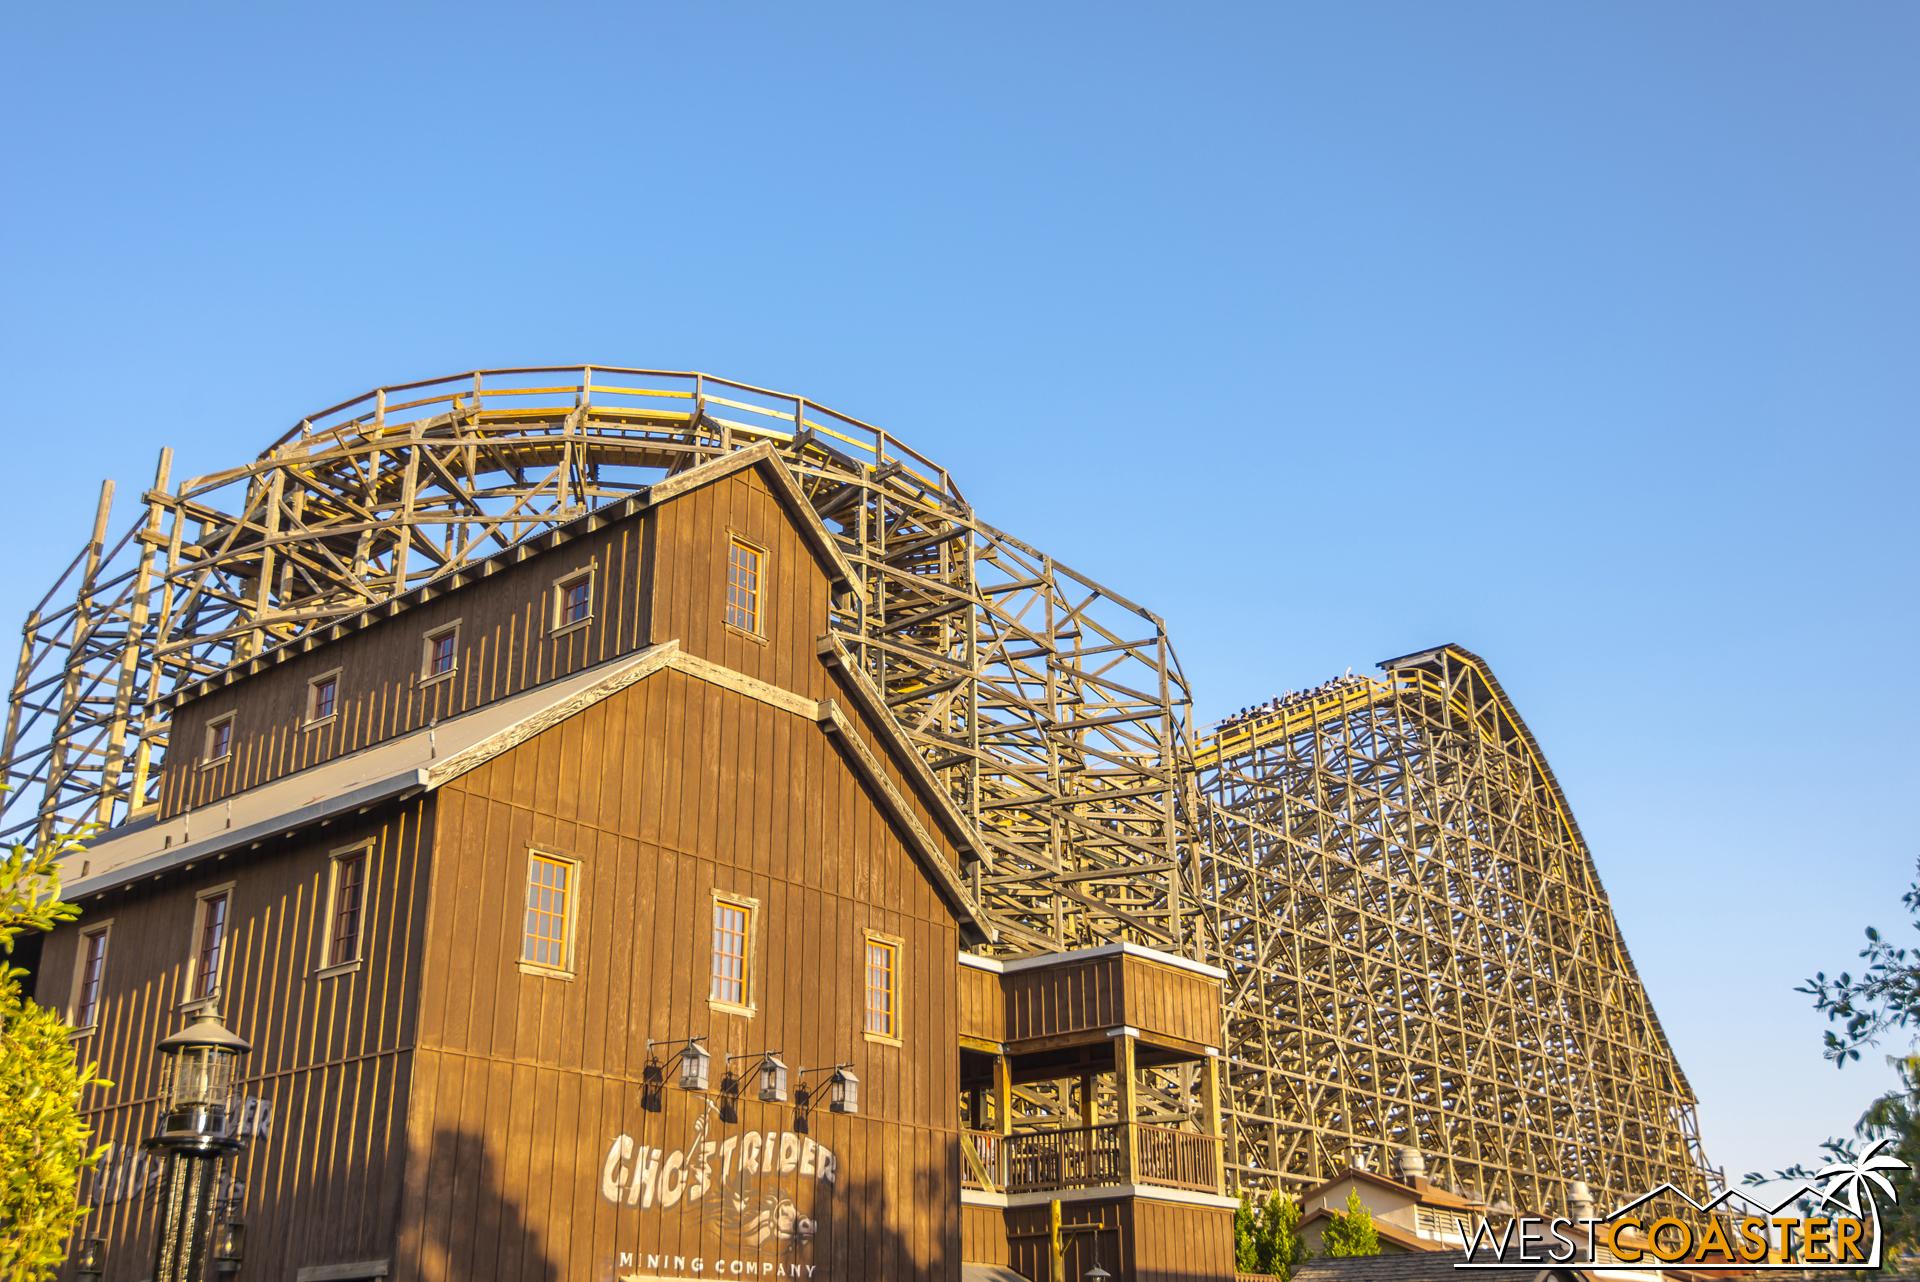 The ride really has a great visual profile from this side corner of Ghost Town.